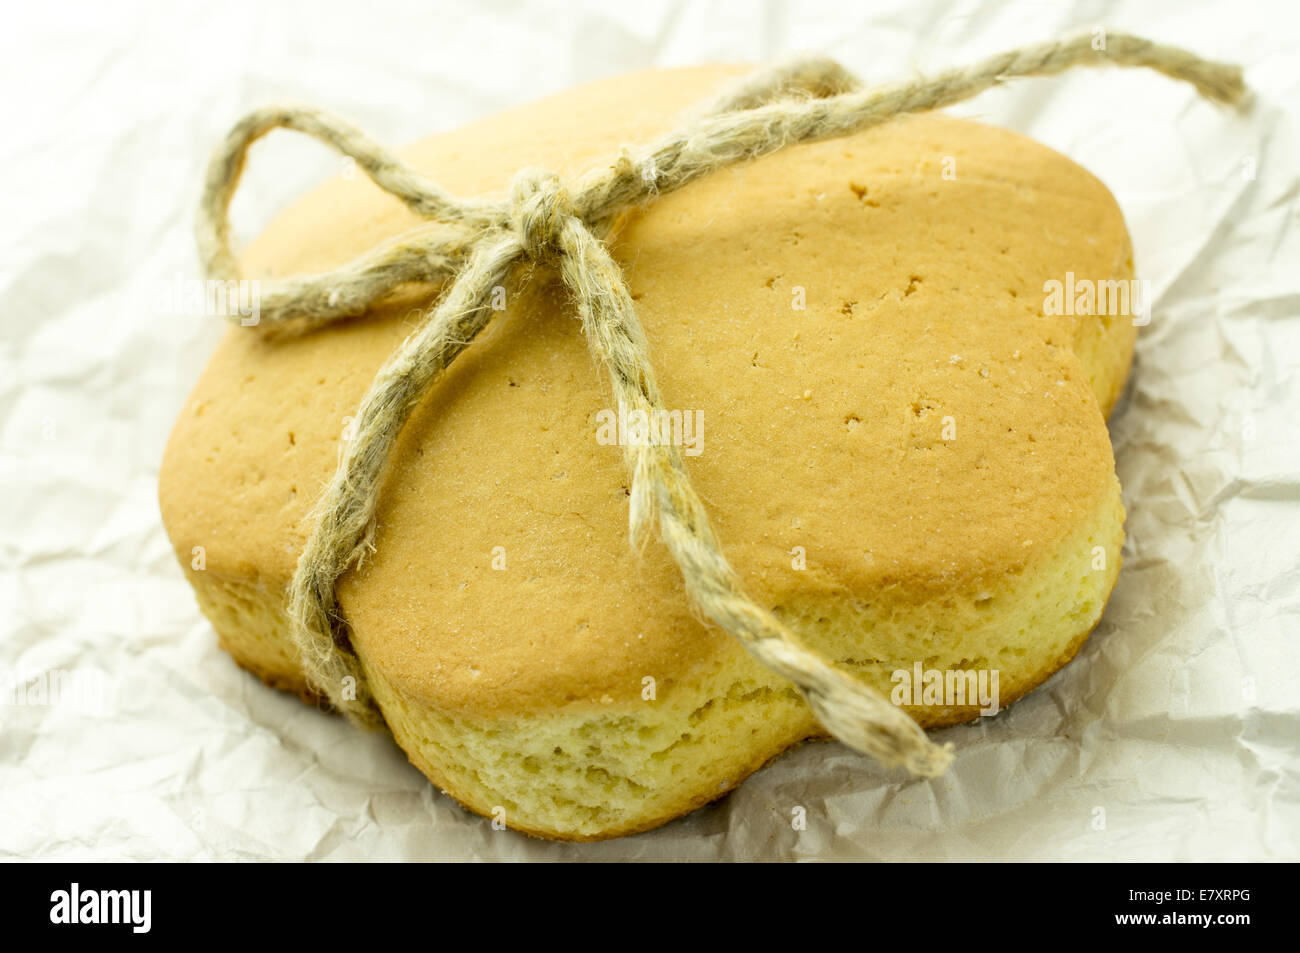 Baking Twine Stock Photos & Baking Twine Stock Images - Alamy